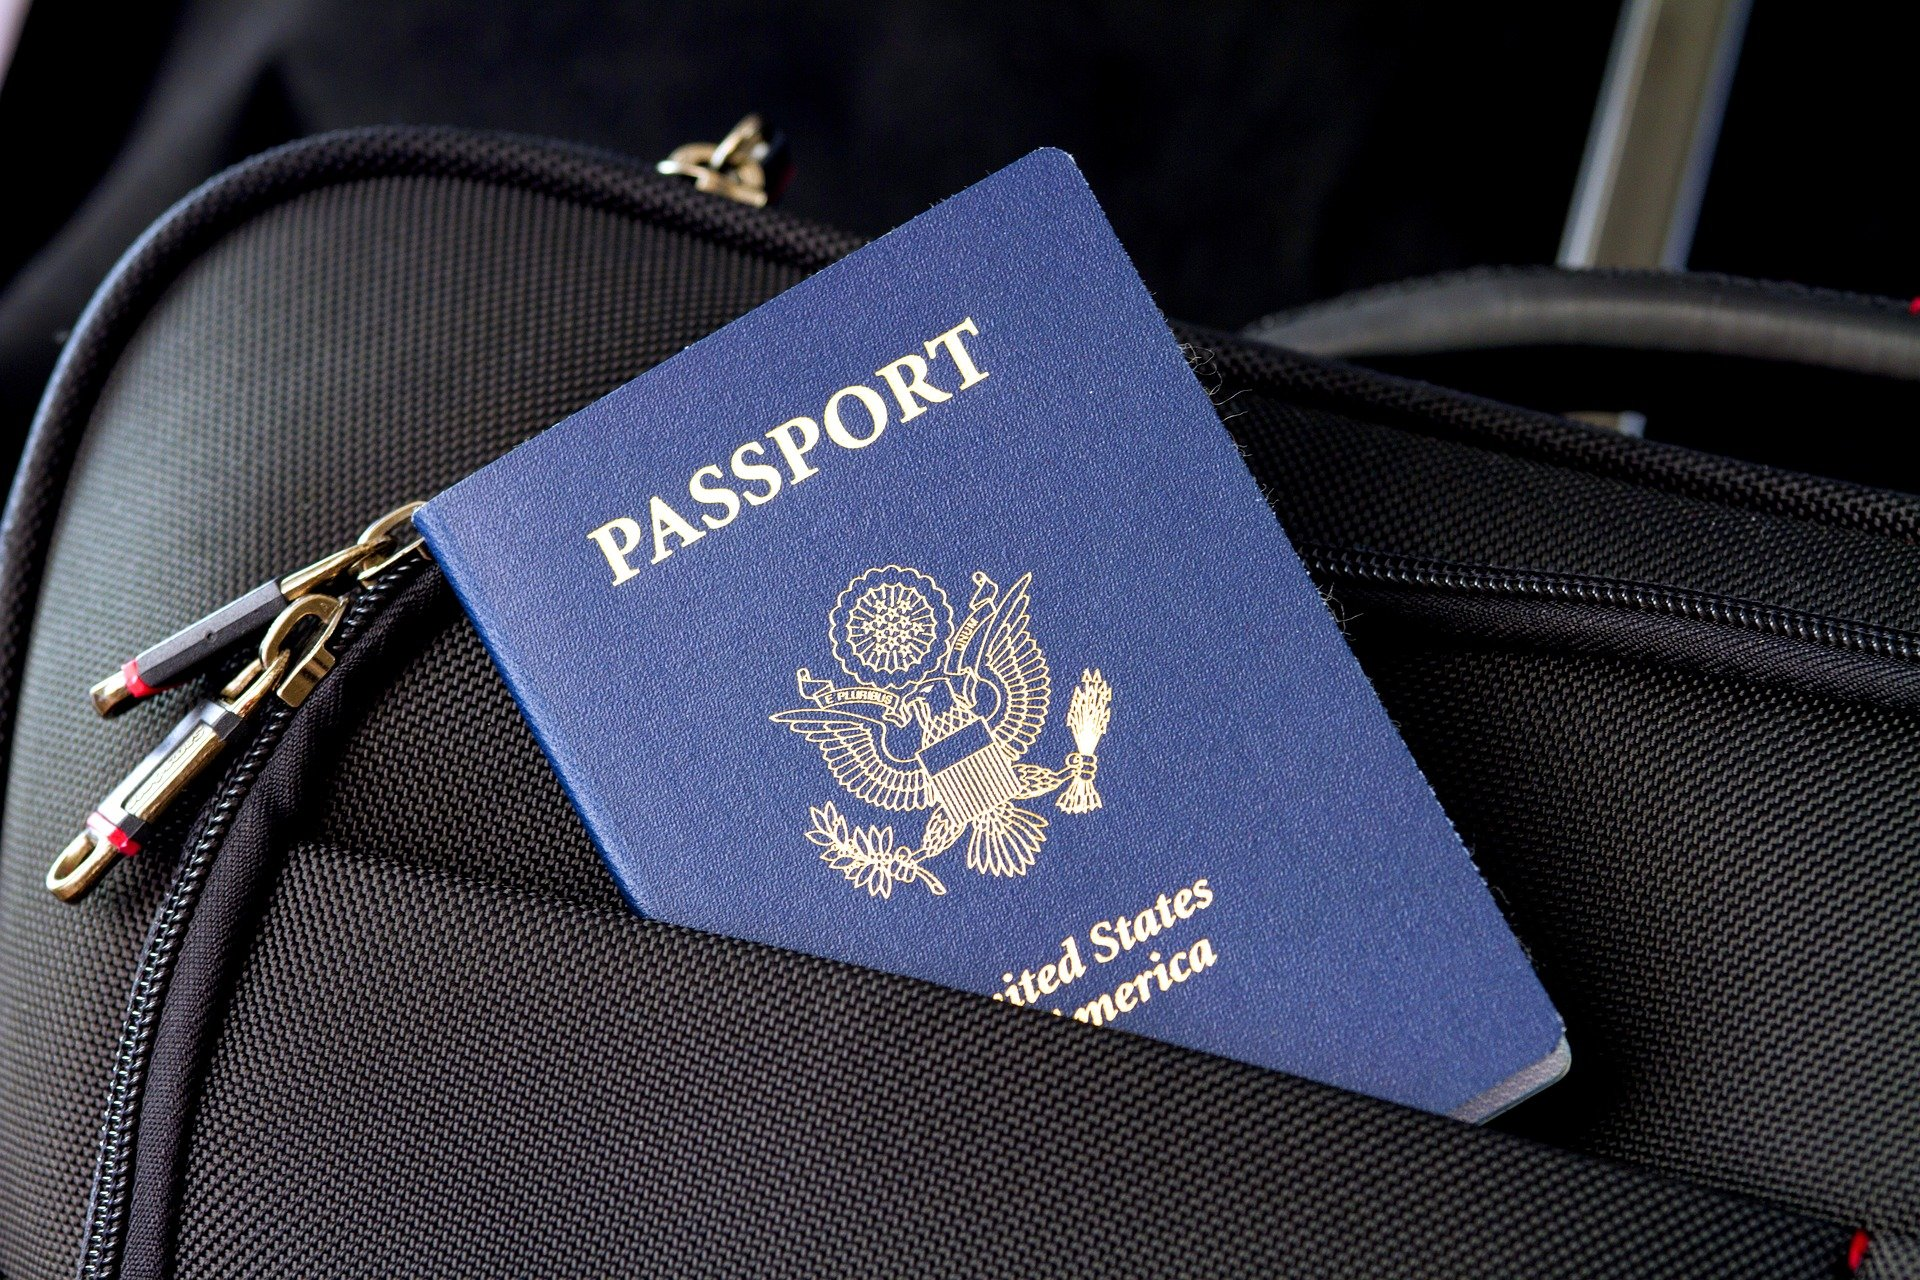 Read more about the article 5 Reasons to Consider Keeping Your Old, Expired Passport